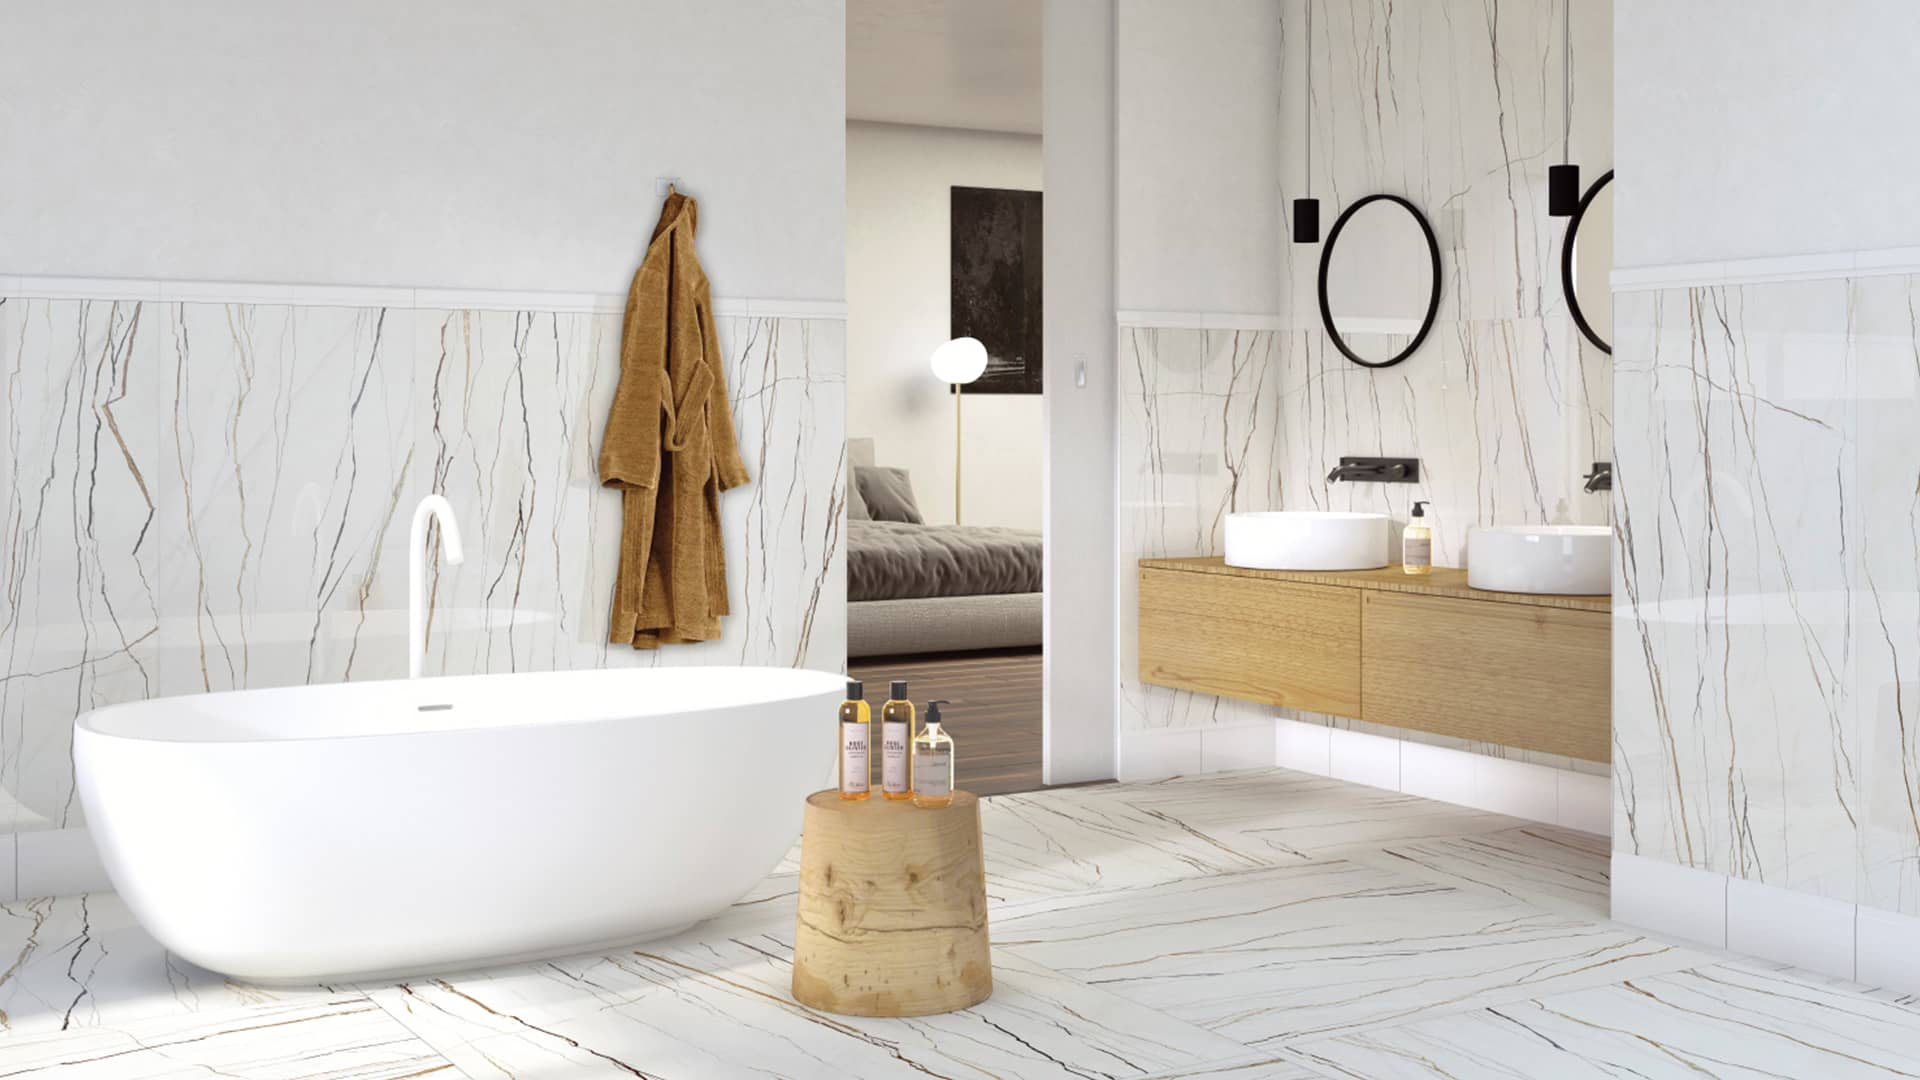 SETTECENTO - Manifattura Ceramica unveil new collections at Cersaie 2021